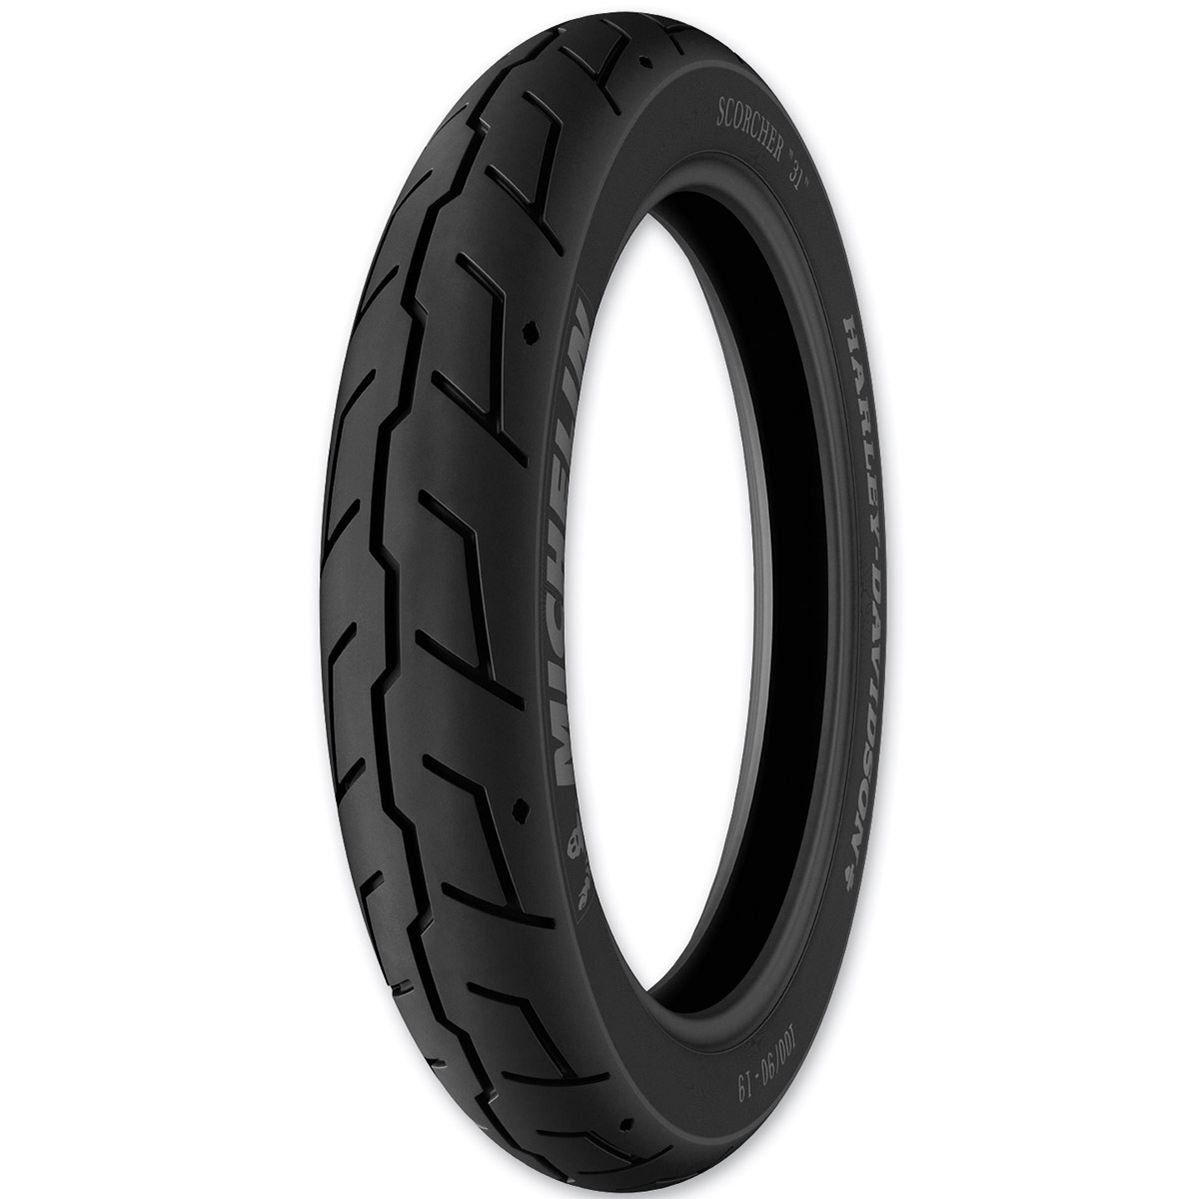 Michelin Scorcher 31 100/90 19 57 H Front Two-Wheeler Tyre